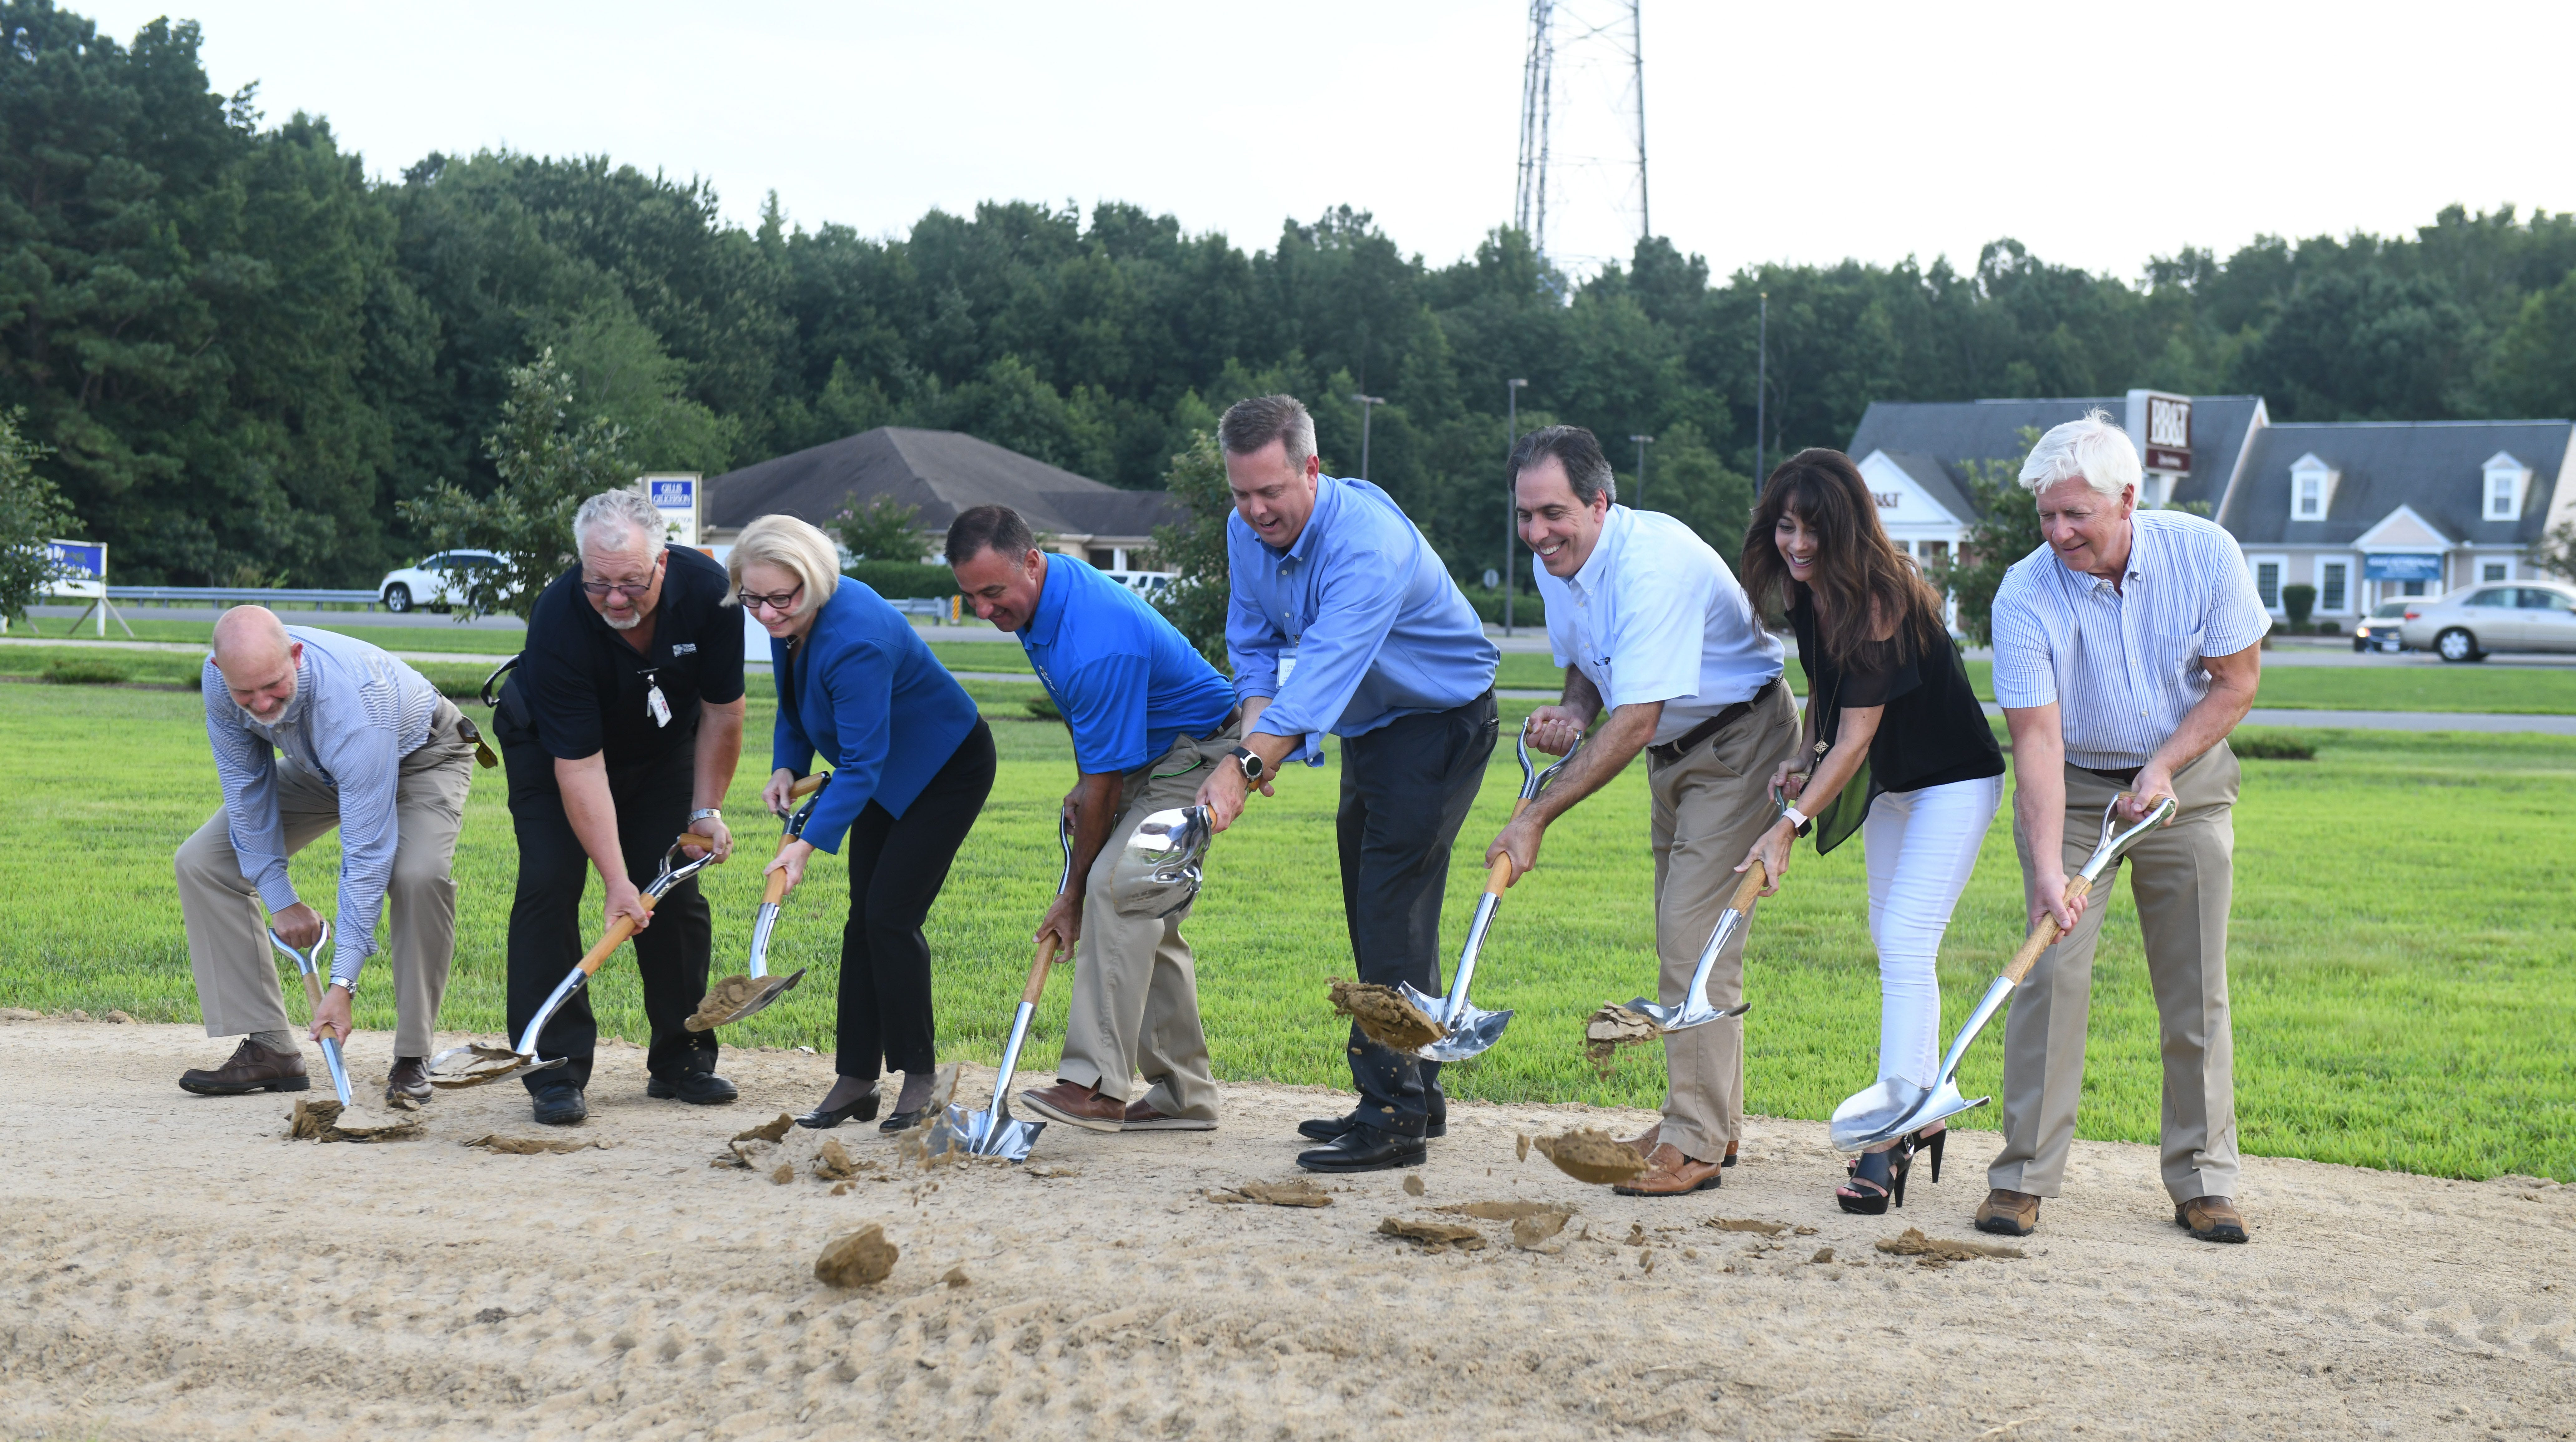 L to R, Tim Feist, PRMC VP, Tom Anderson, PRMC VP, Cindy Lunsford, Exec. VP, Herb Geary, PRMC Board of Trustees, Steve Leonard, PRMC President CEO, Dr. Gerry Canakis, Carla Canakis, Palmer Gillis, Developer broke ground on Wednesday, August 8, 2018 for the new endoscopy center at the Delmarva Health Pavilion in Ocean Pines, Md.